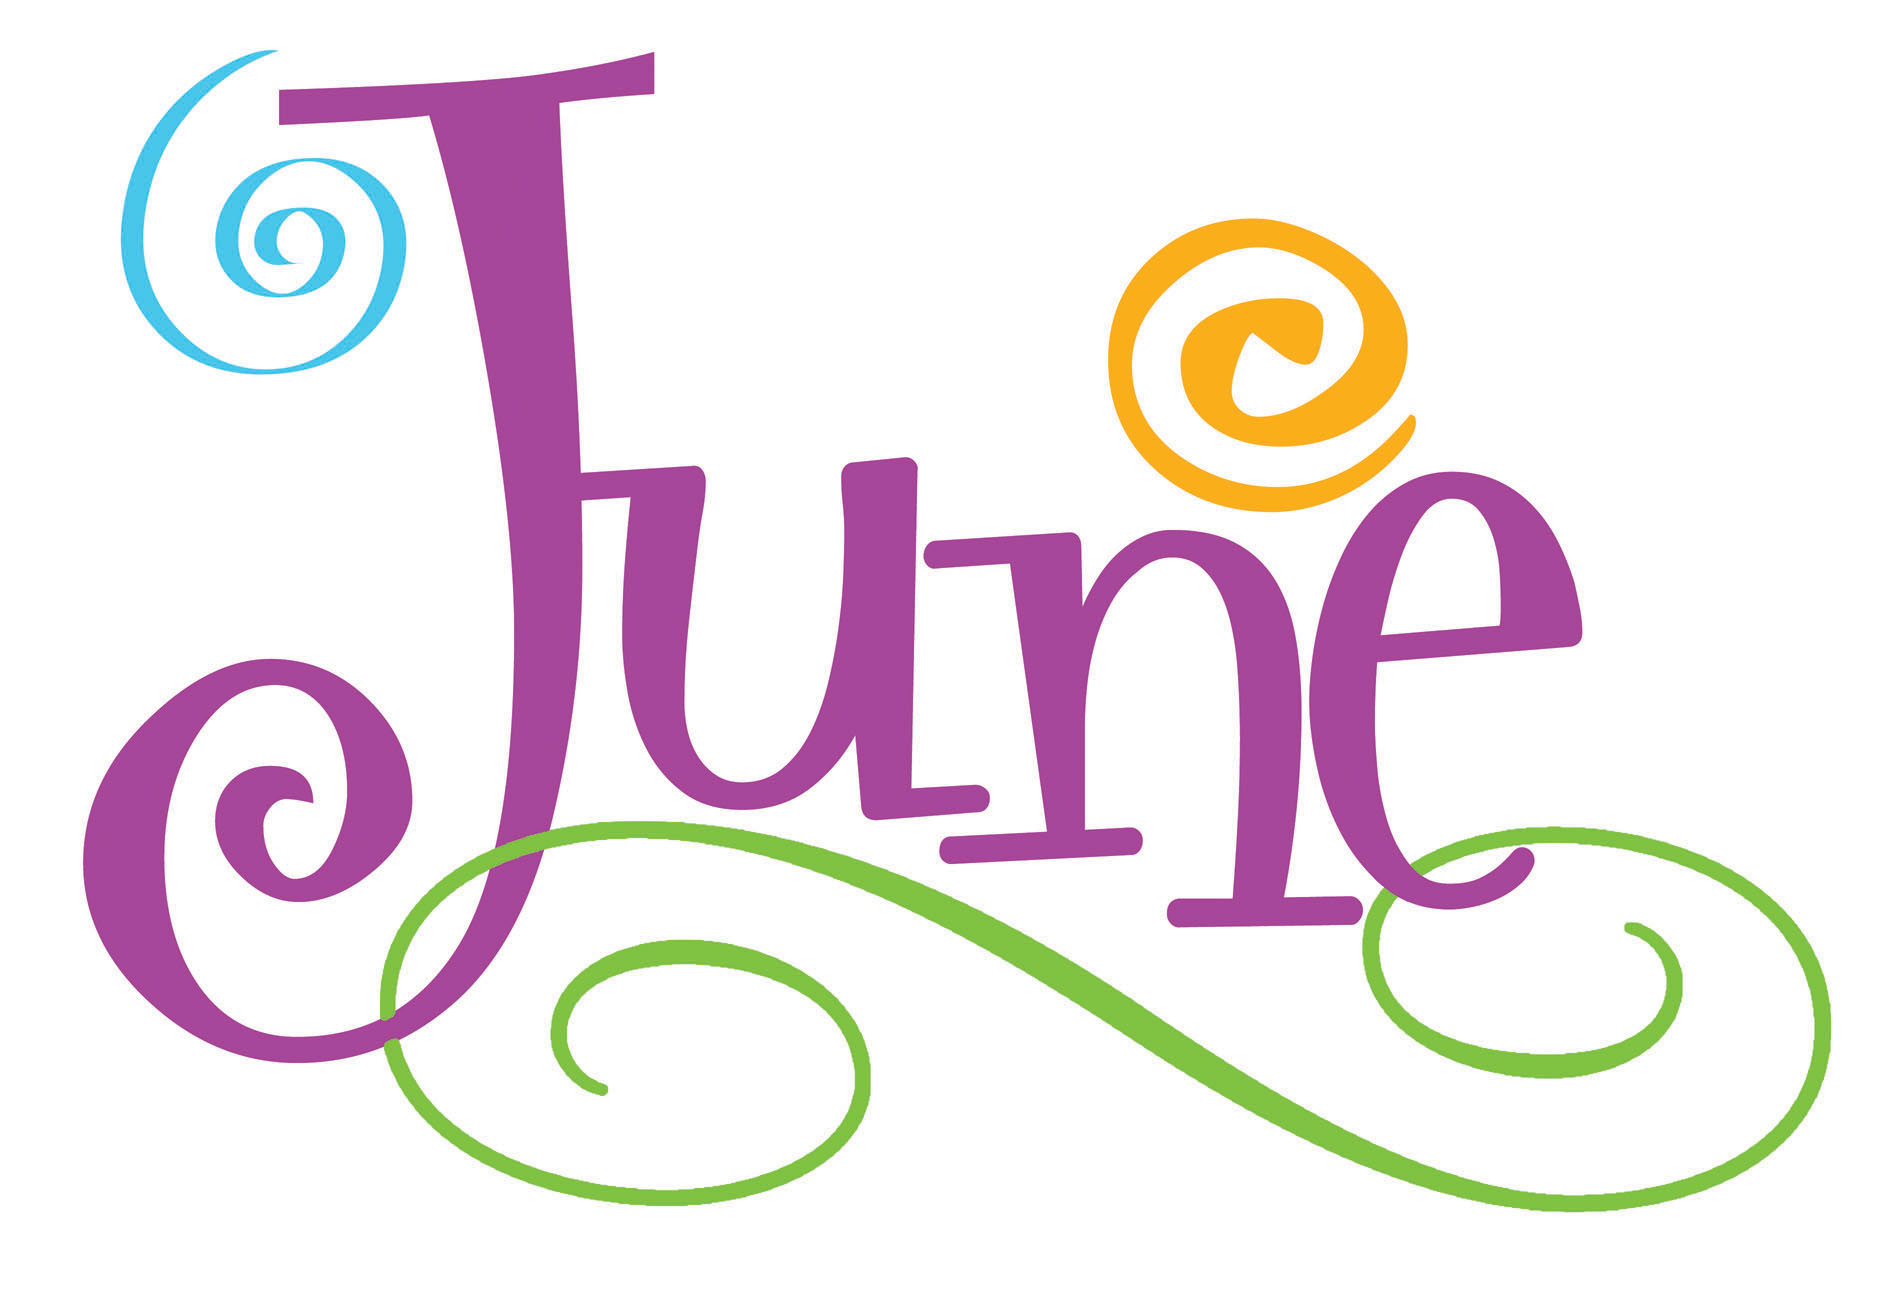 June 5 clipart clipart free download Free June 5th Cliparts, Download Free Clip Art, Free Clip ... clipart free download